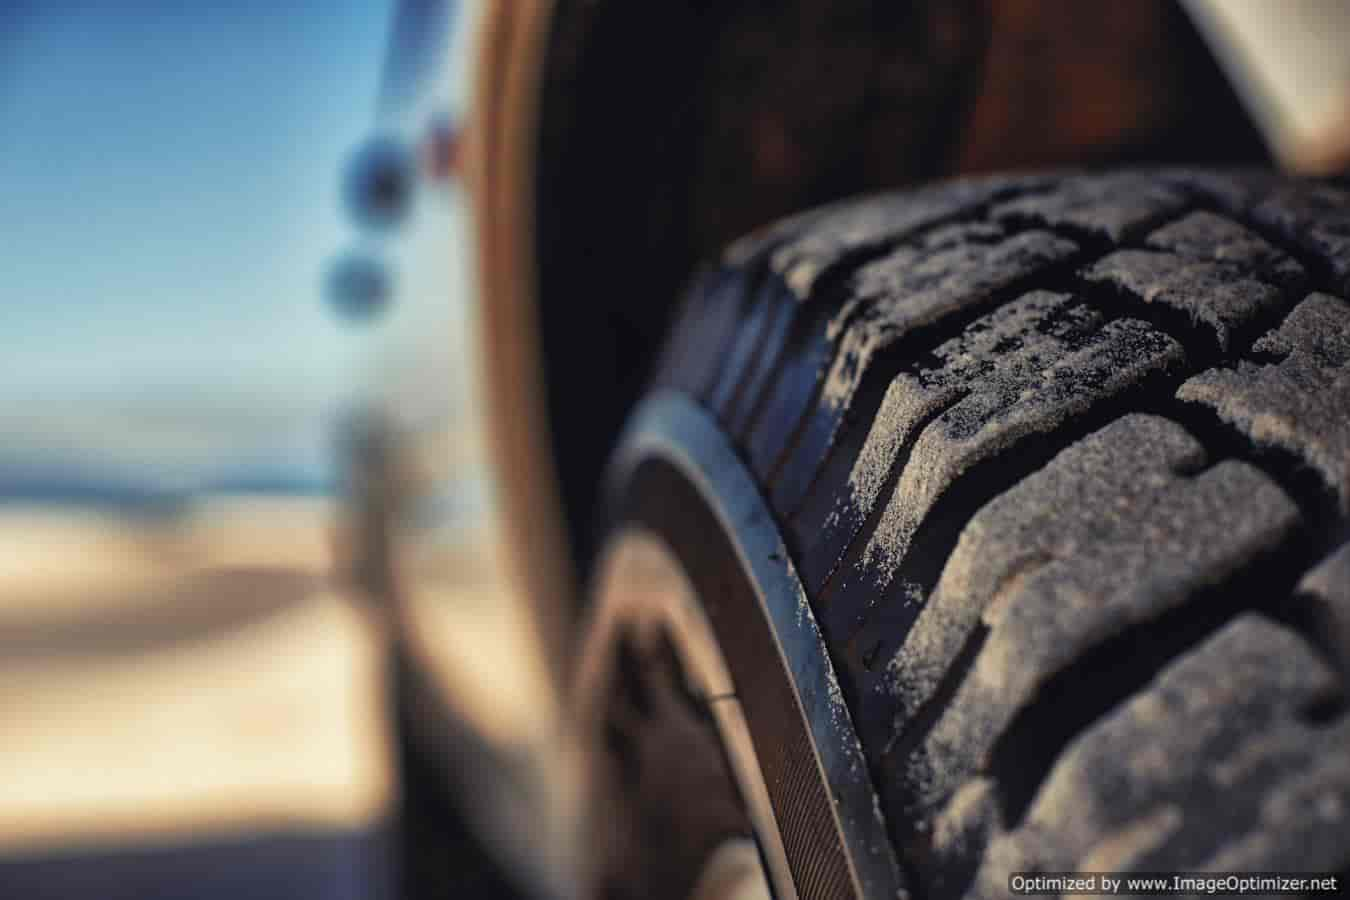 Top 4 Myths Vs Facts About Using Nitrogen To Inflate Car Tires